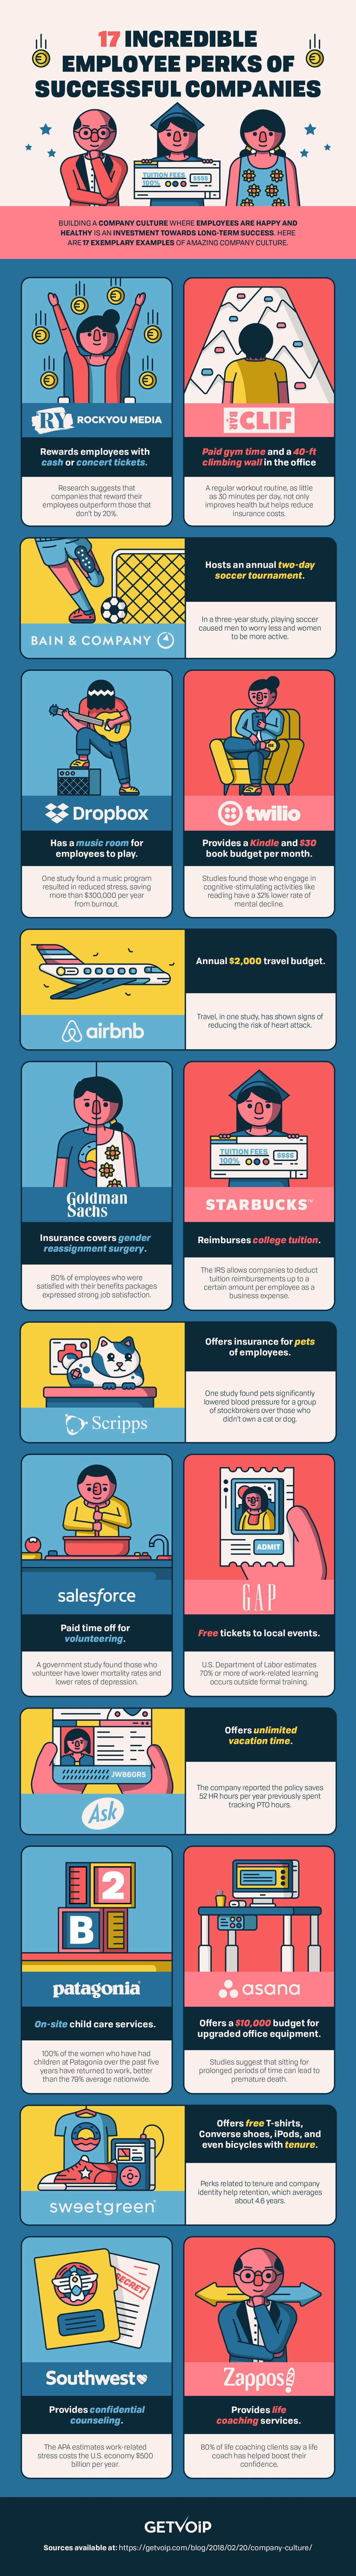 Employee Perks from Successful Company Cultures